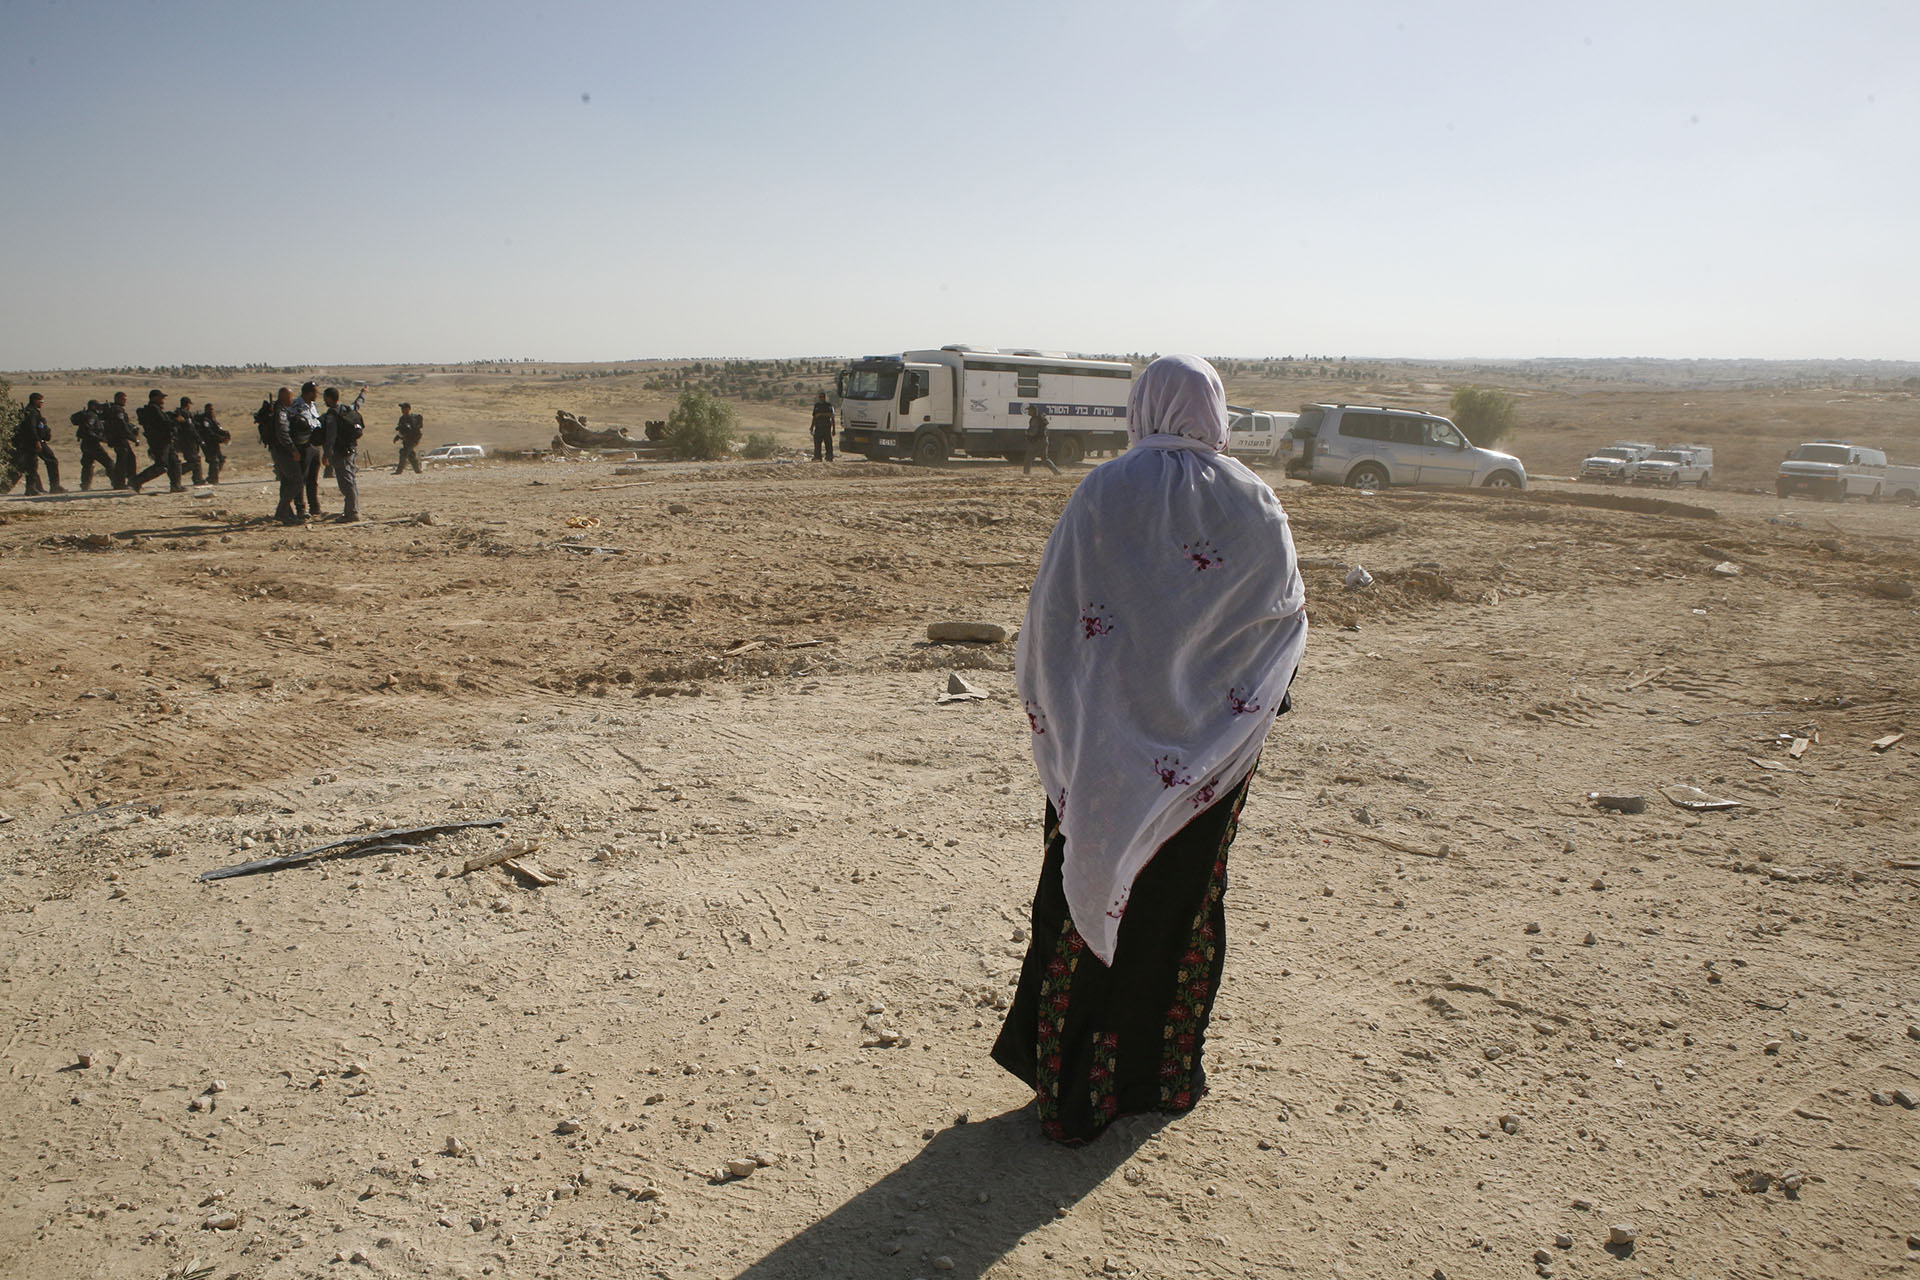 On 12 June 2014, the state of Israel attempted once again to completely shut down Al Araqib. Between July 2010 and June 2014, the state had demolished homes built outside the cemetery perimeter. Families had resettled inside the perimeter but continued to build symbolic structures outside too, where their homes once stood.  On June 12, police entered the perimeter and razed everything to the ground. Al Araqib, June 2012